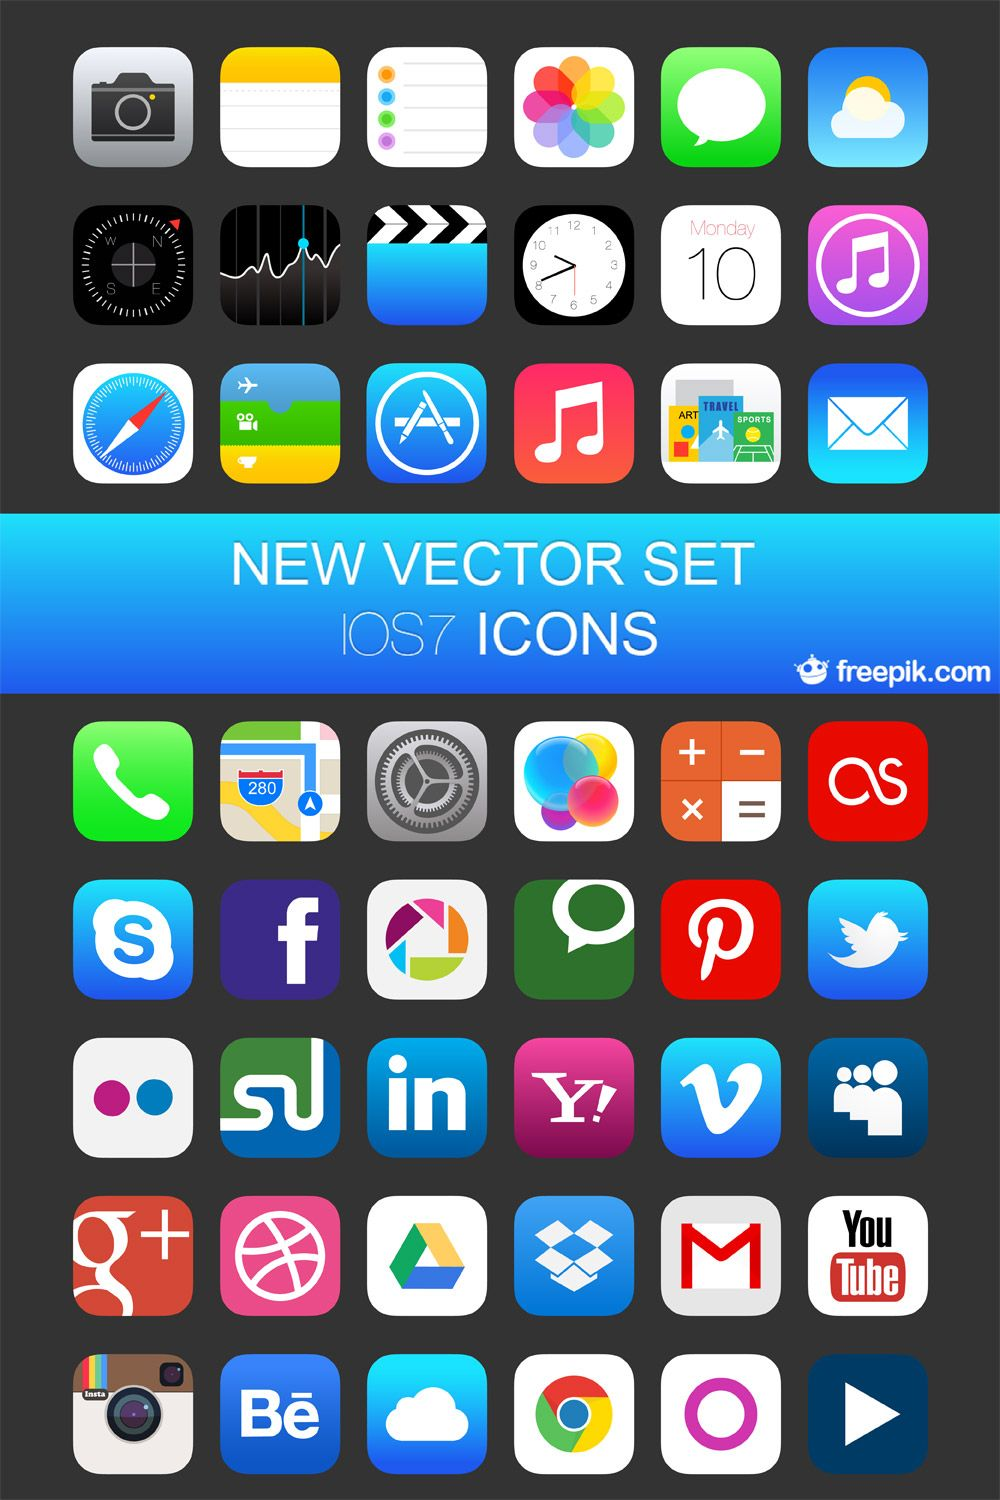 Free iOS 7 Vector Icons Vector icon design, Free icon